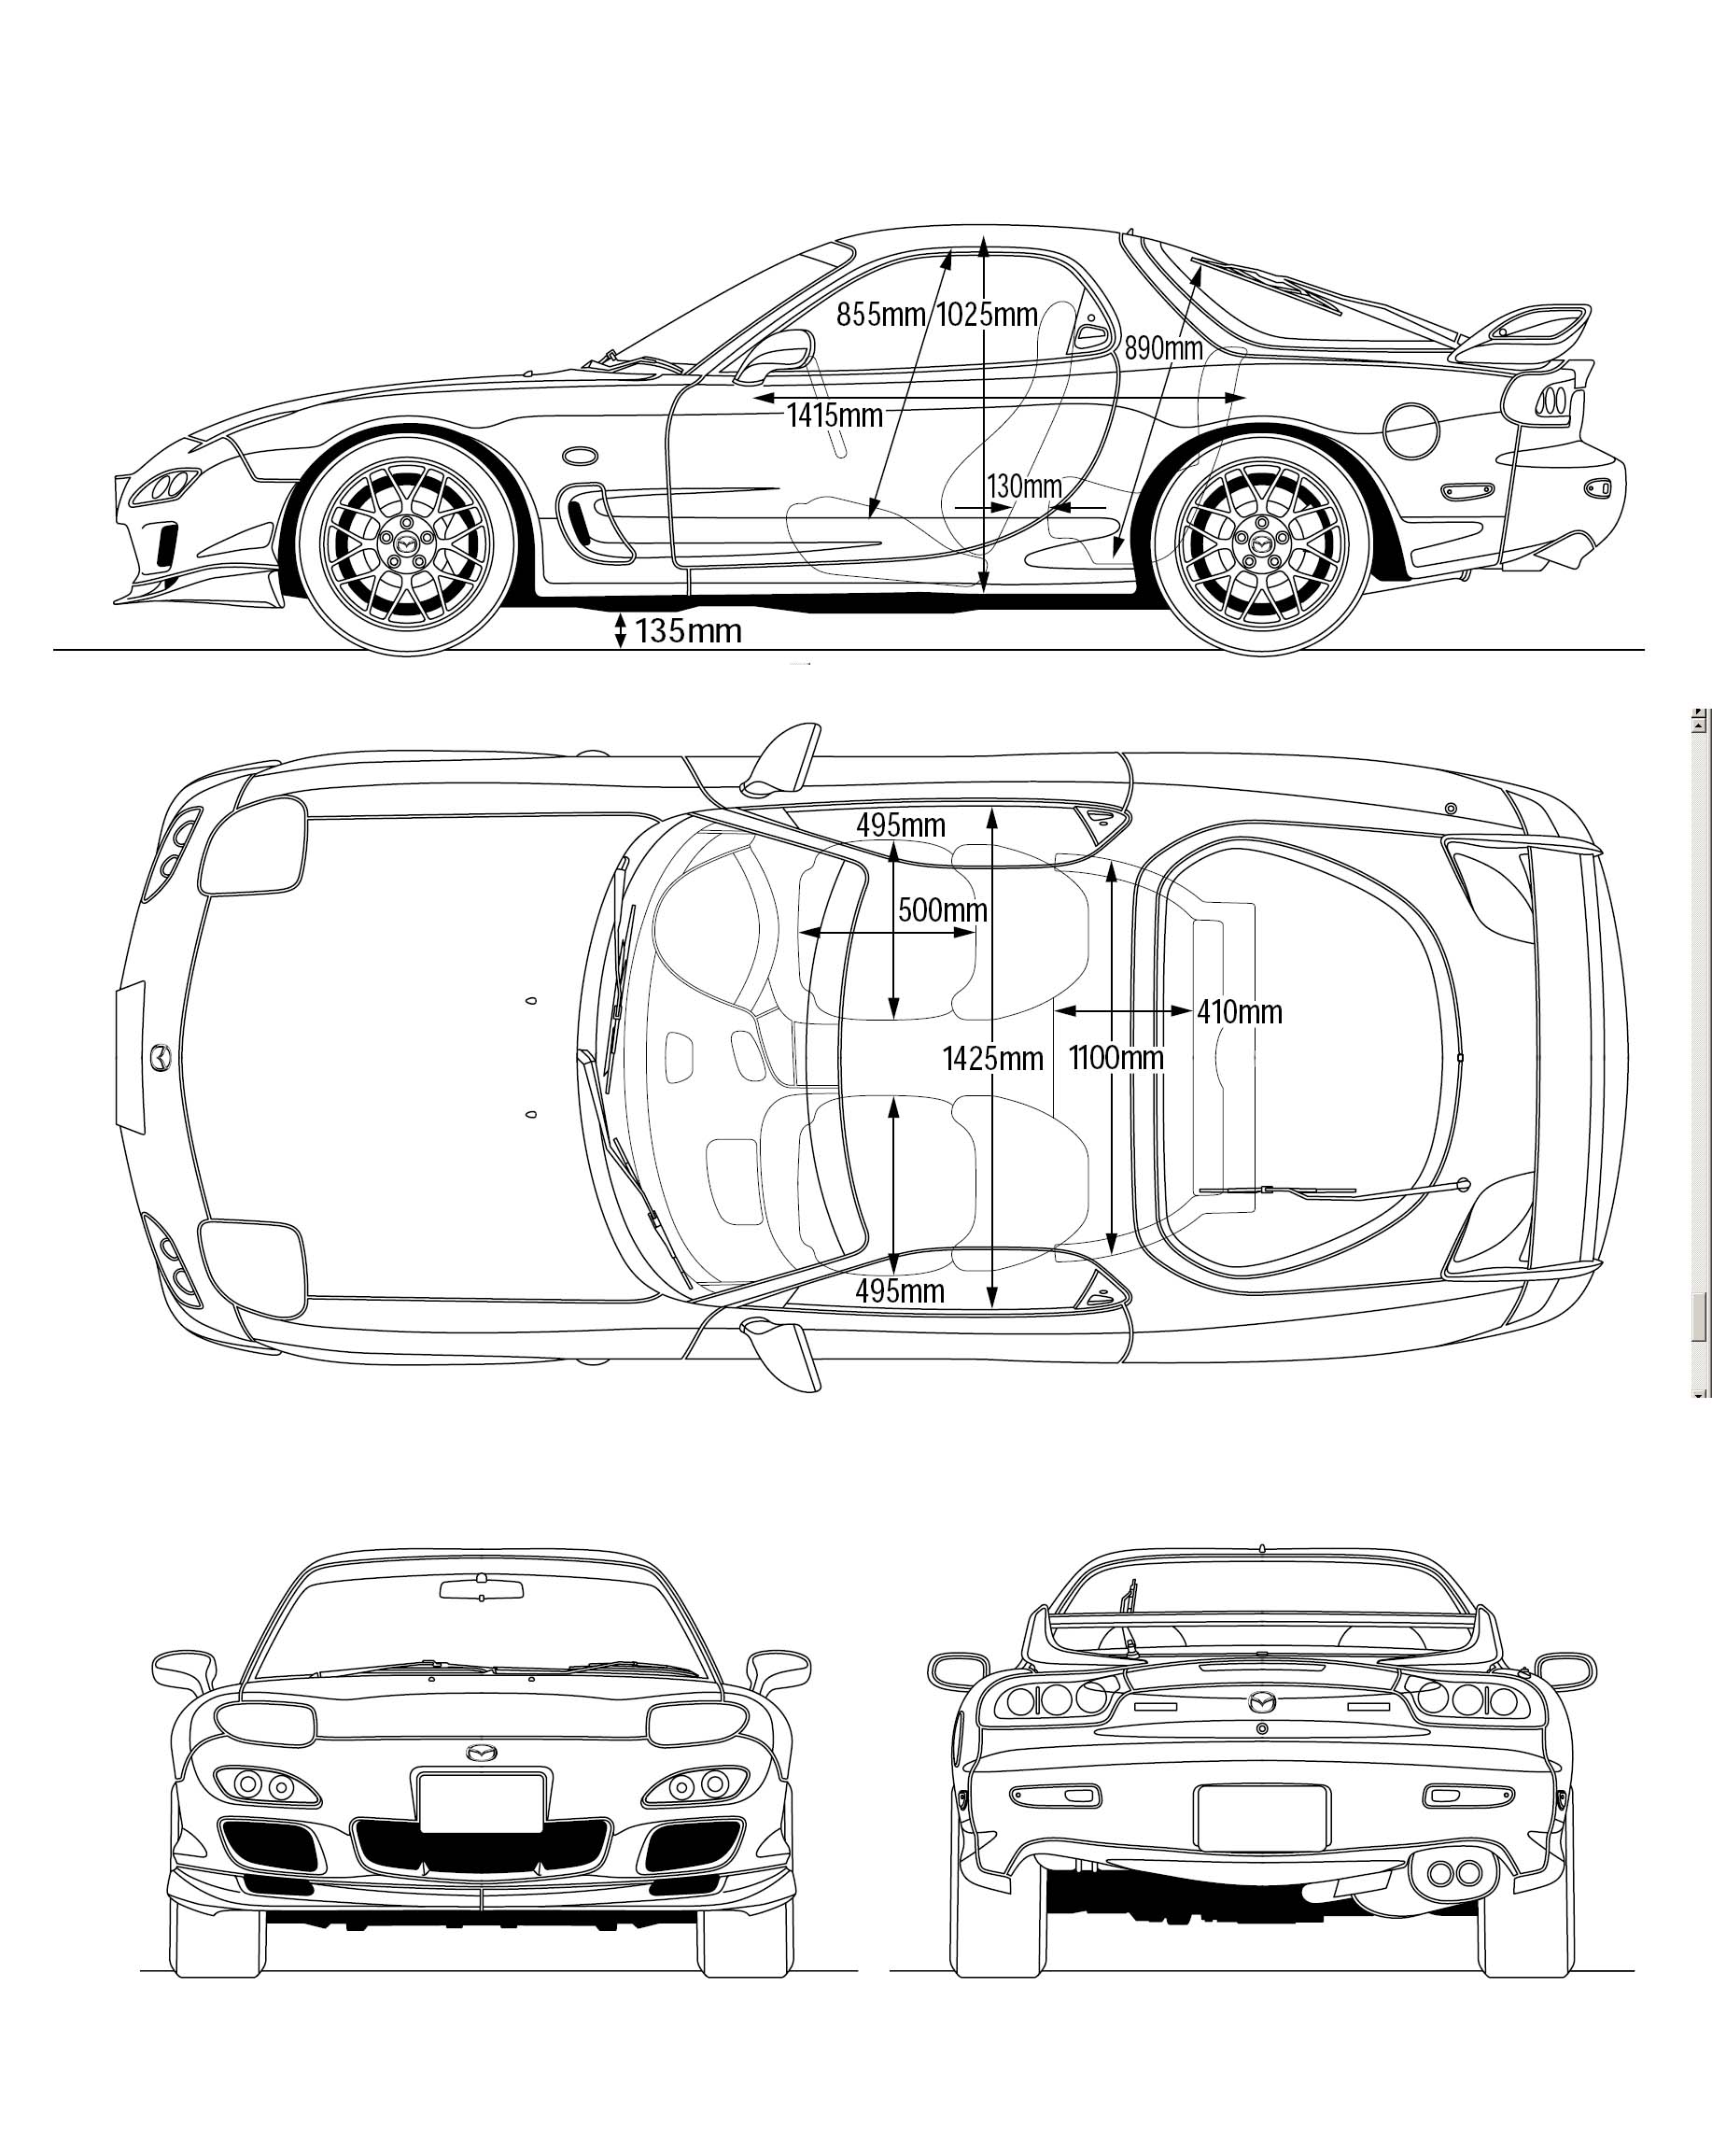 Mazda Rx 7 Rotary Engine Diagram. Mazda Rx 7 Rotary Engine Diagram. Mazda. Mazda Rx 8 Wiring Diagrams At Justdesktopwallpapers.com